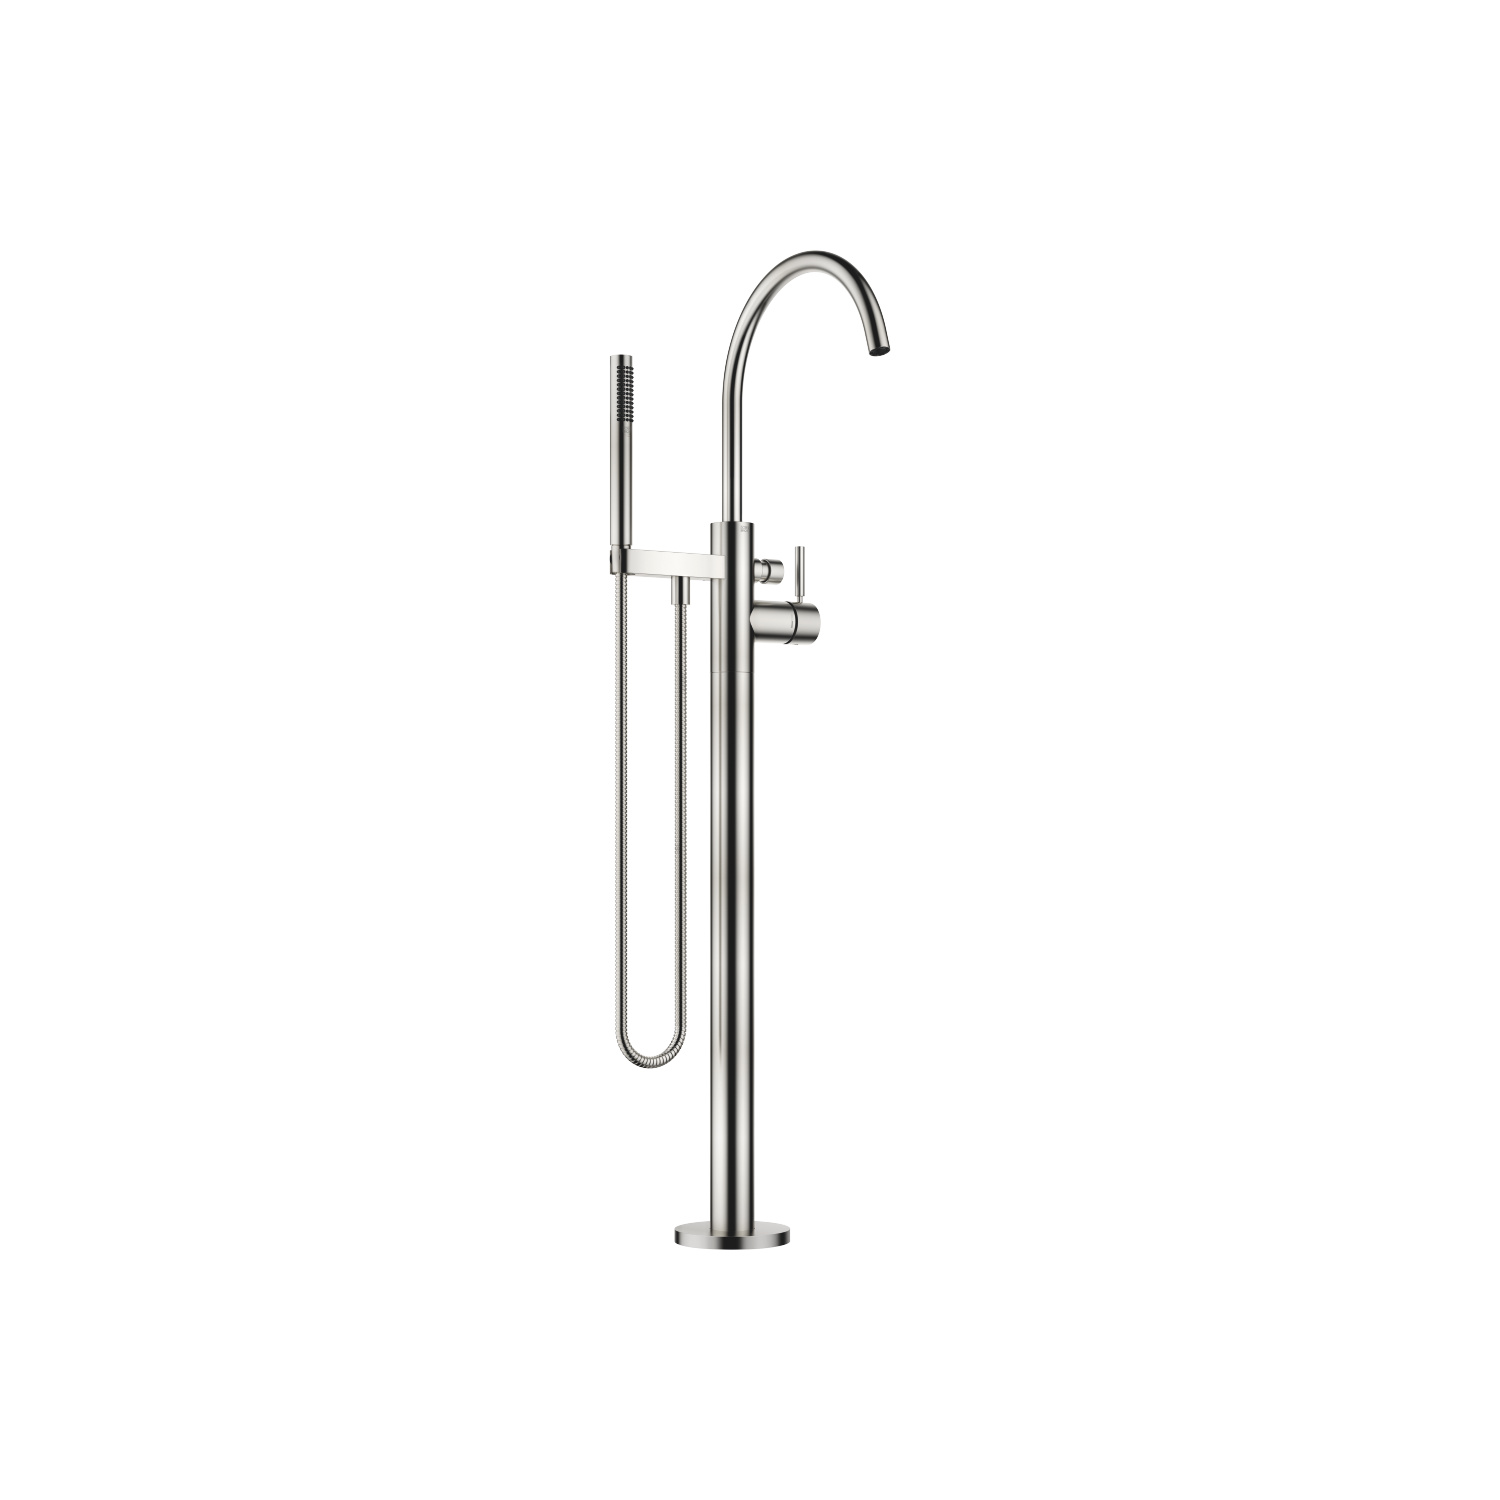 Single-lever tub mixer for freestanding installation with hand shower set - platinum matte - 25 863 661-06